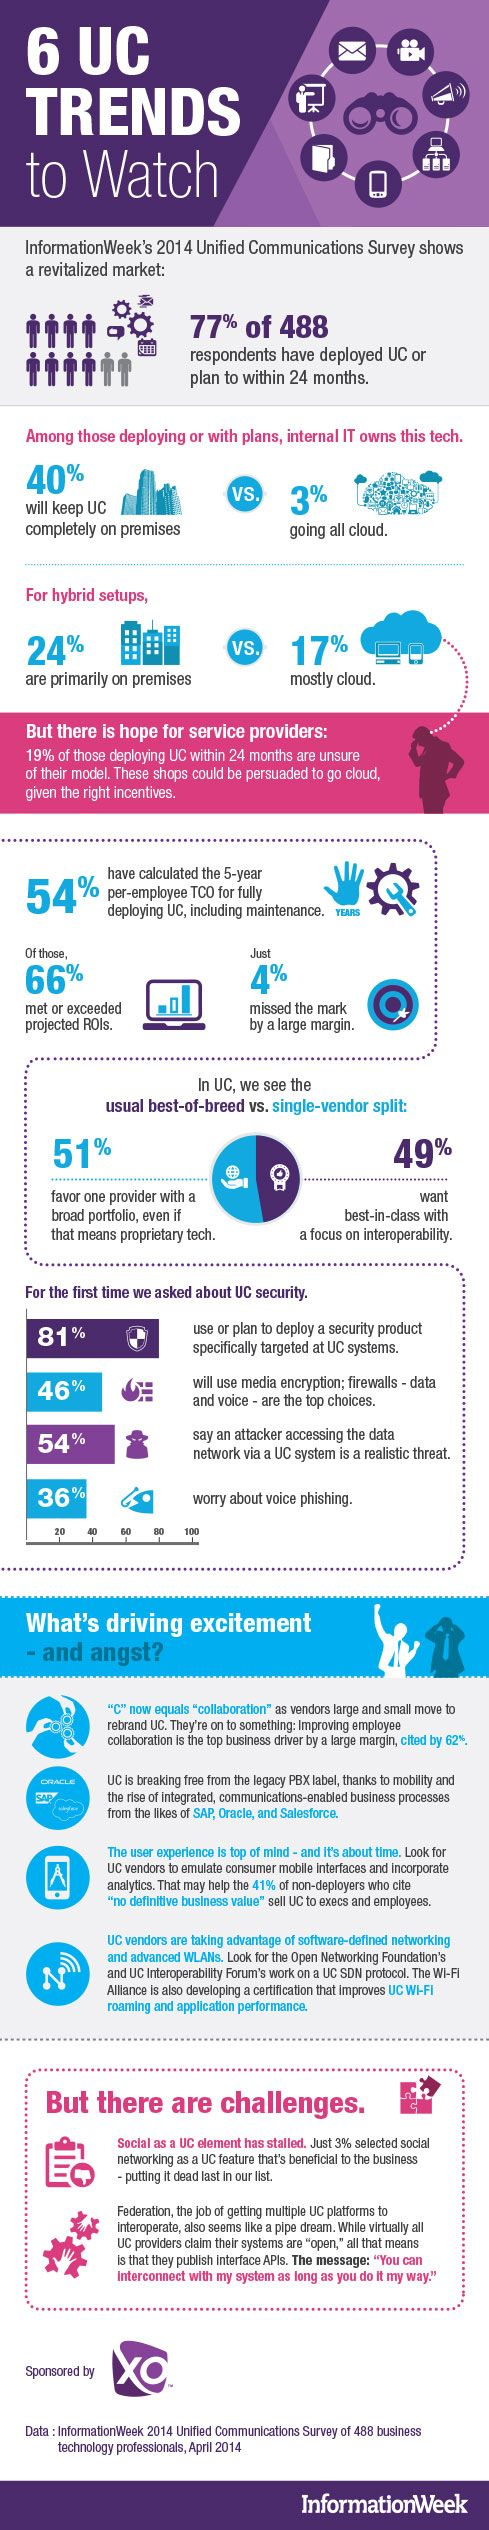 7 Unified Communications Trends to Watch from InformationWeek's 2014 UC Survey